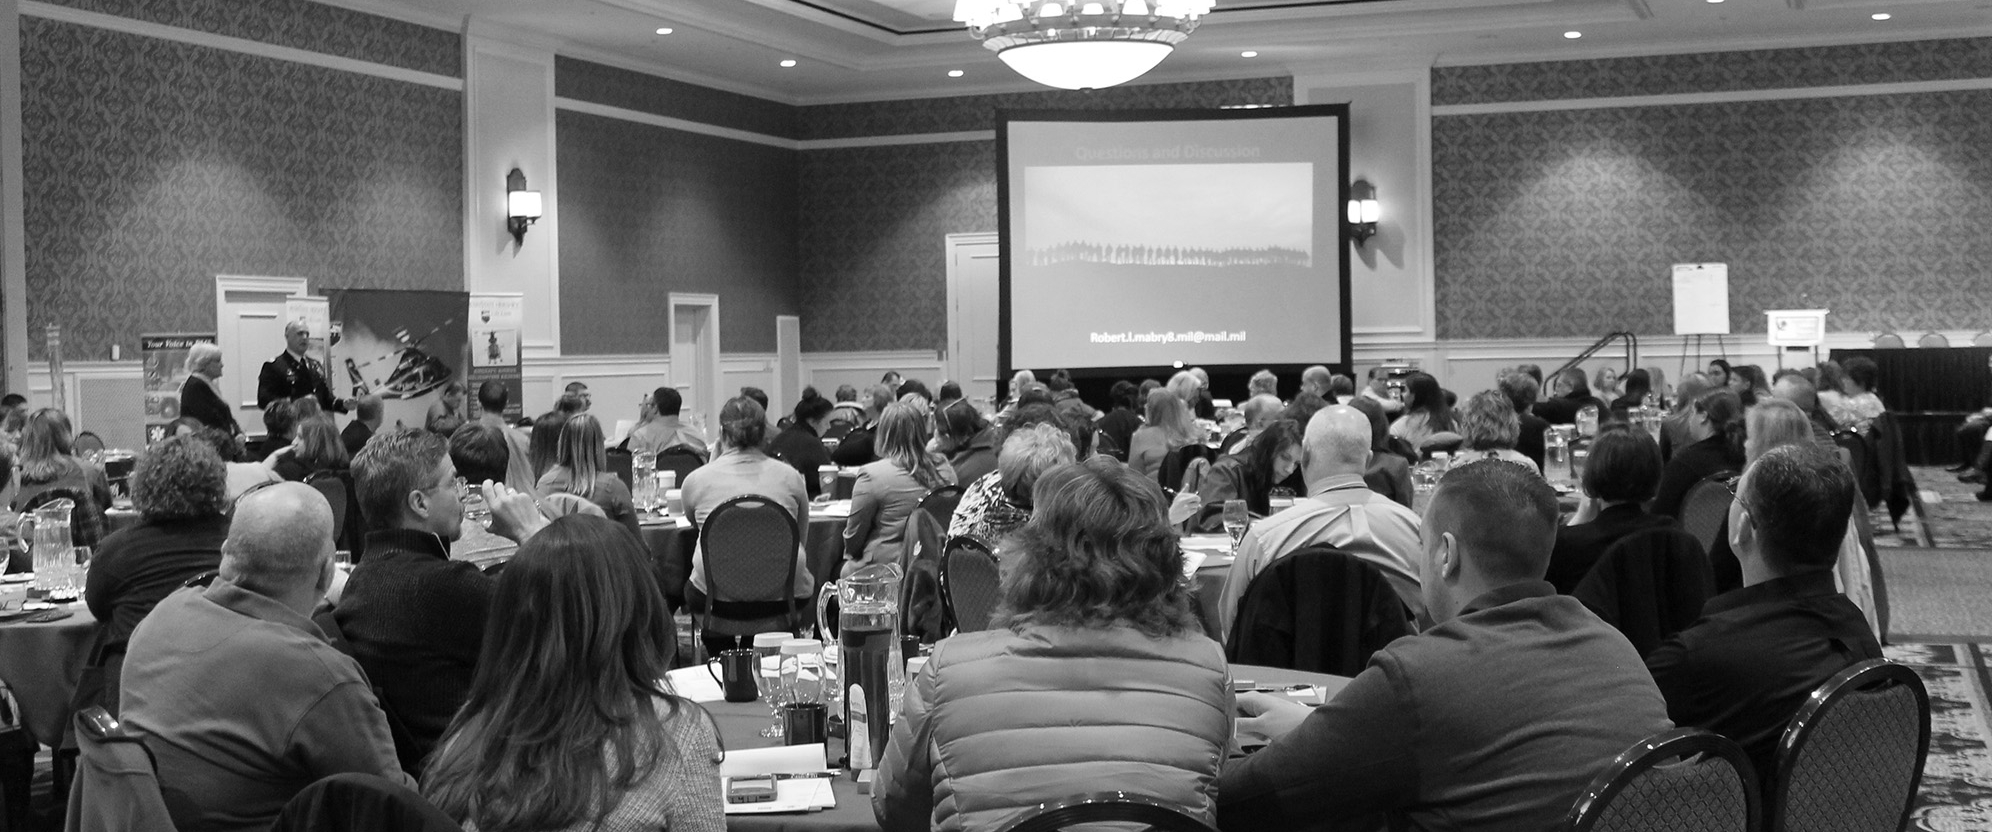 ATSPA Conference - Fostering Resiliency in the Trauma Community - Sponsors